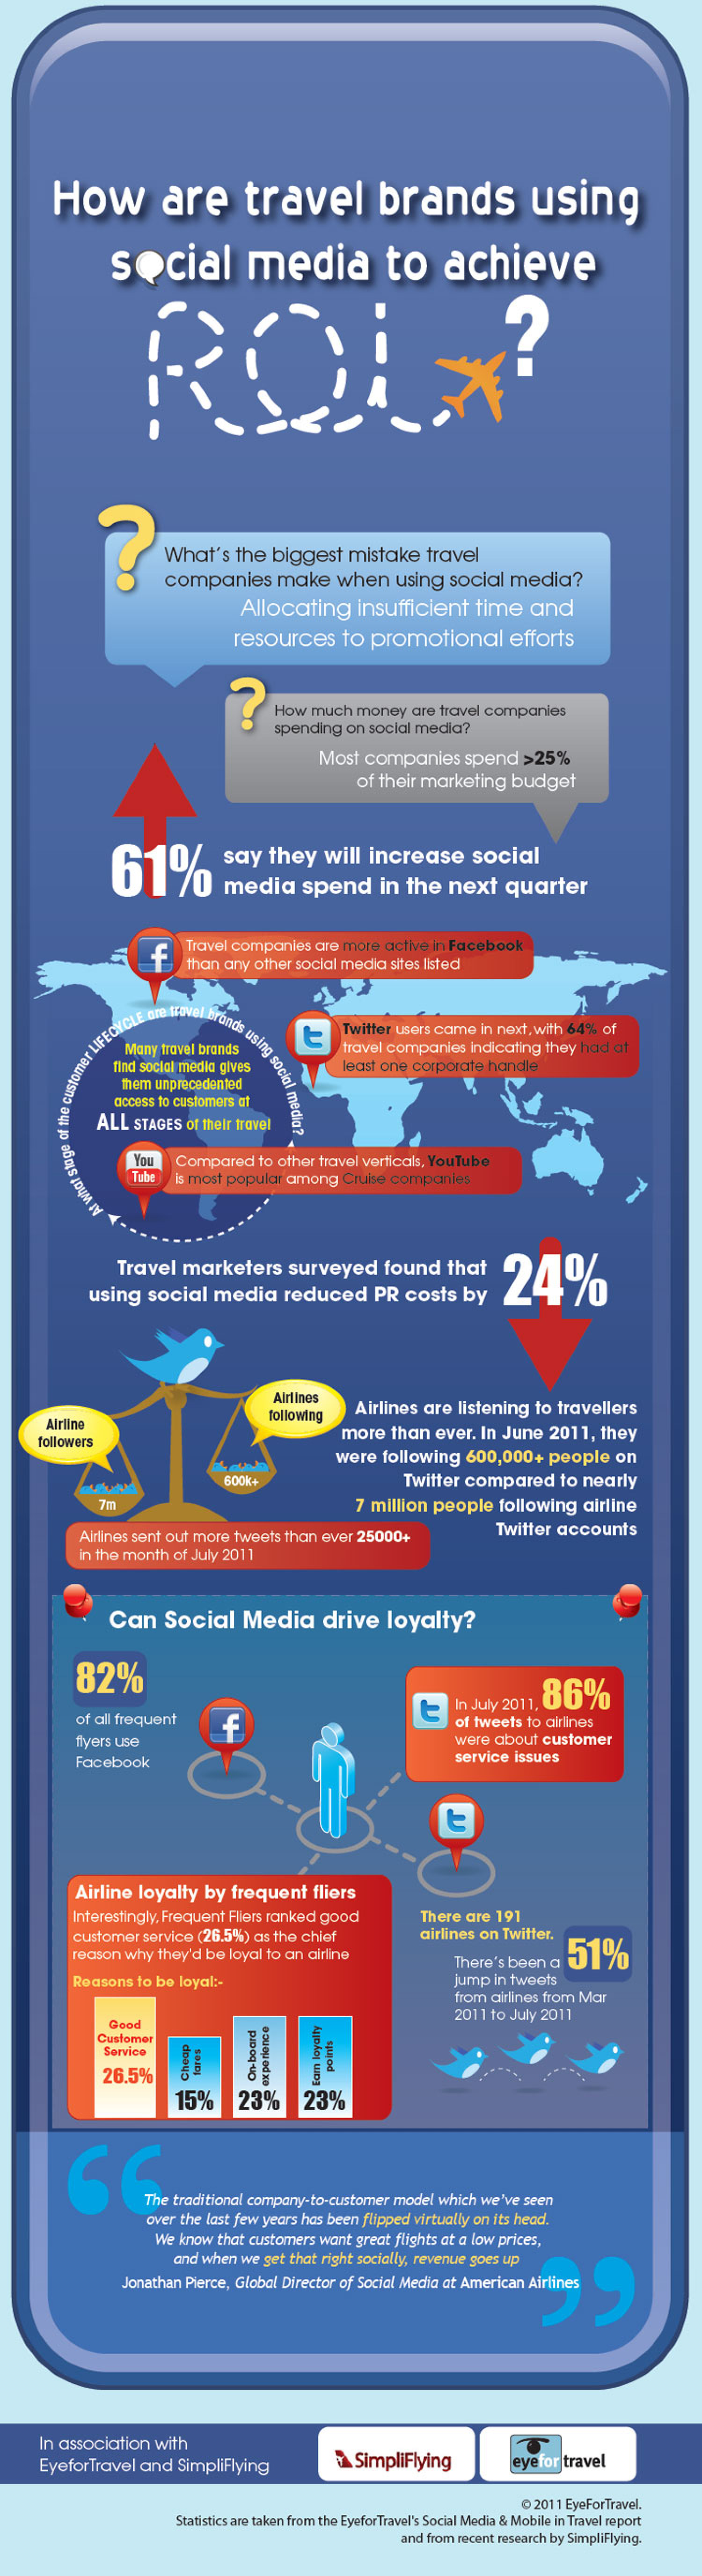 How are travel brands using Social Media to achieve ROI? Infographic